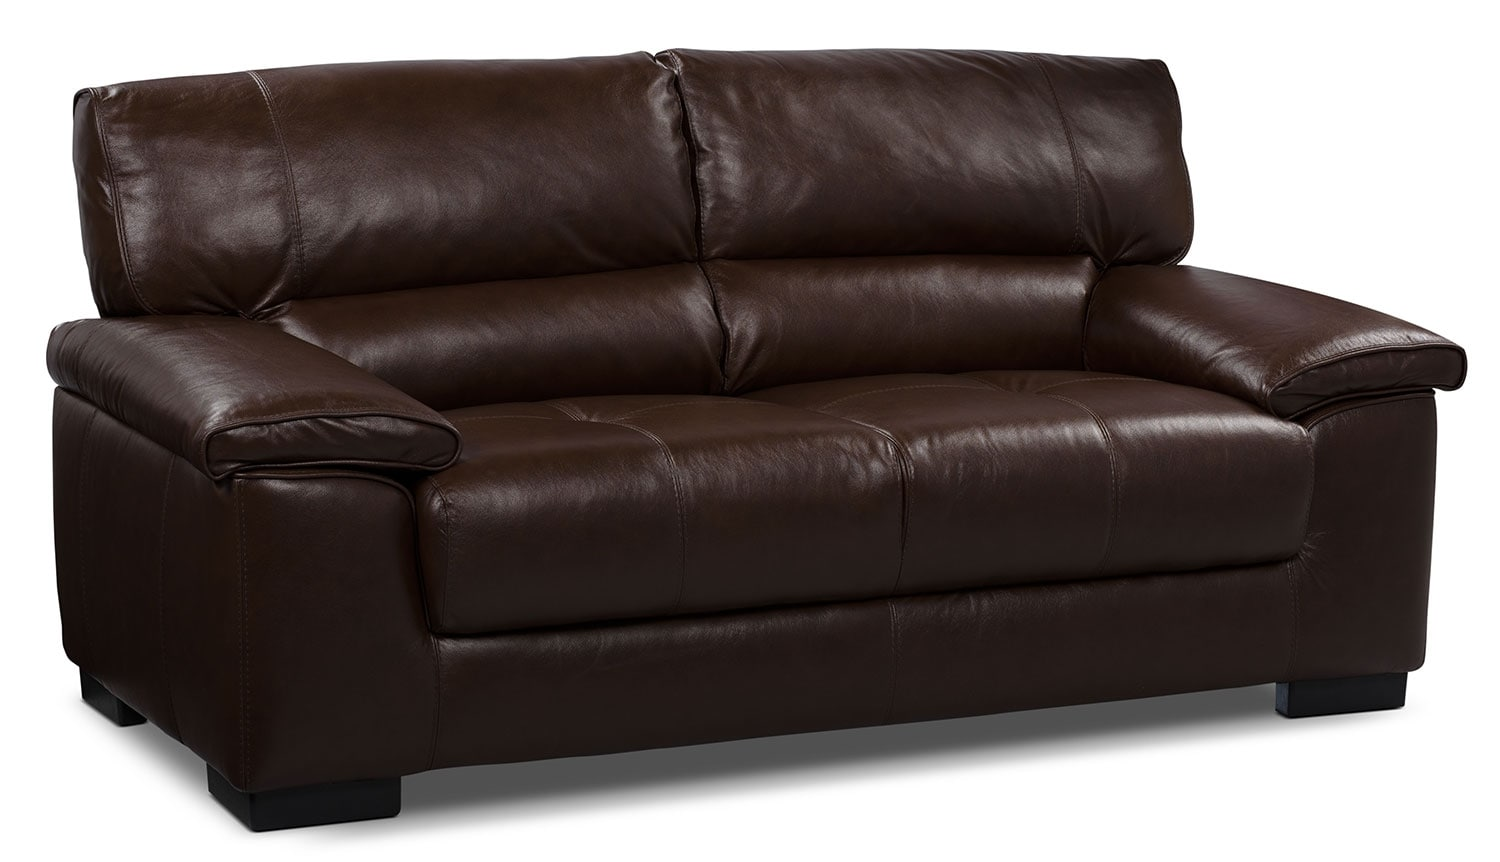 Chateau d'Ax 100% Genuine Leather Loveseat - Dark Brown